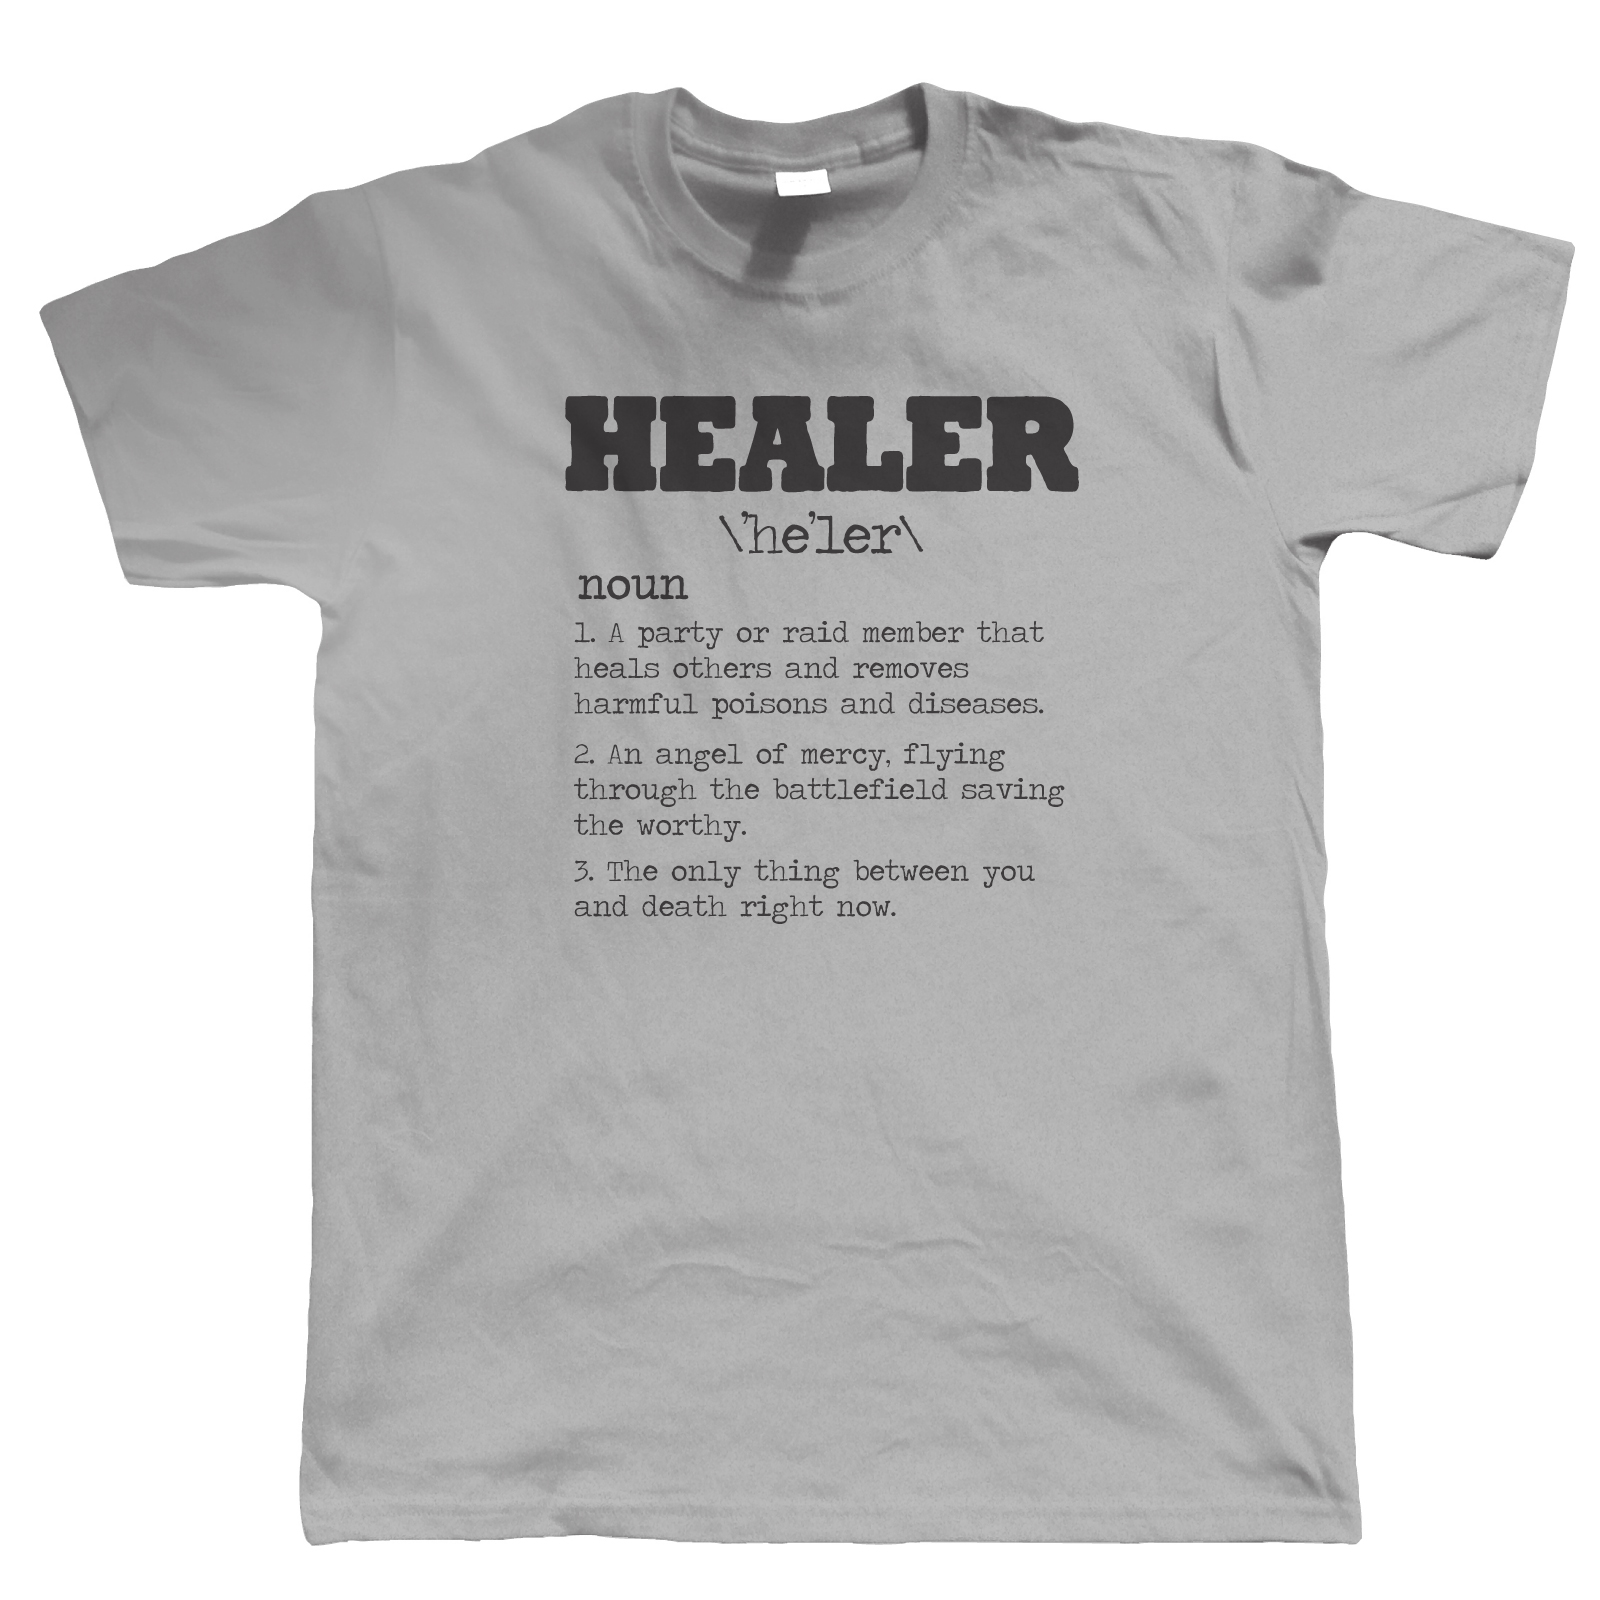 Healer Rpg Gamer T Shirt Video Game Mmorpg Pc Gamer Wow Horde Alliance Rogue Fashion Unique Classic Cotton Men T Shirt image